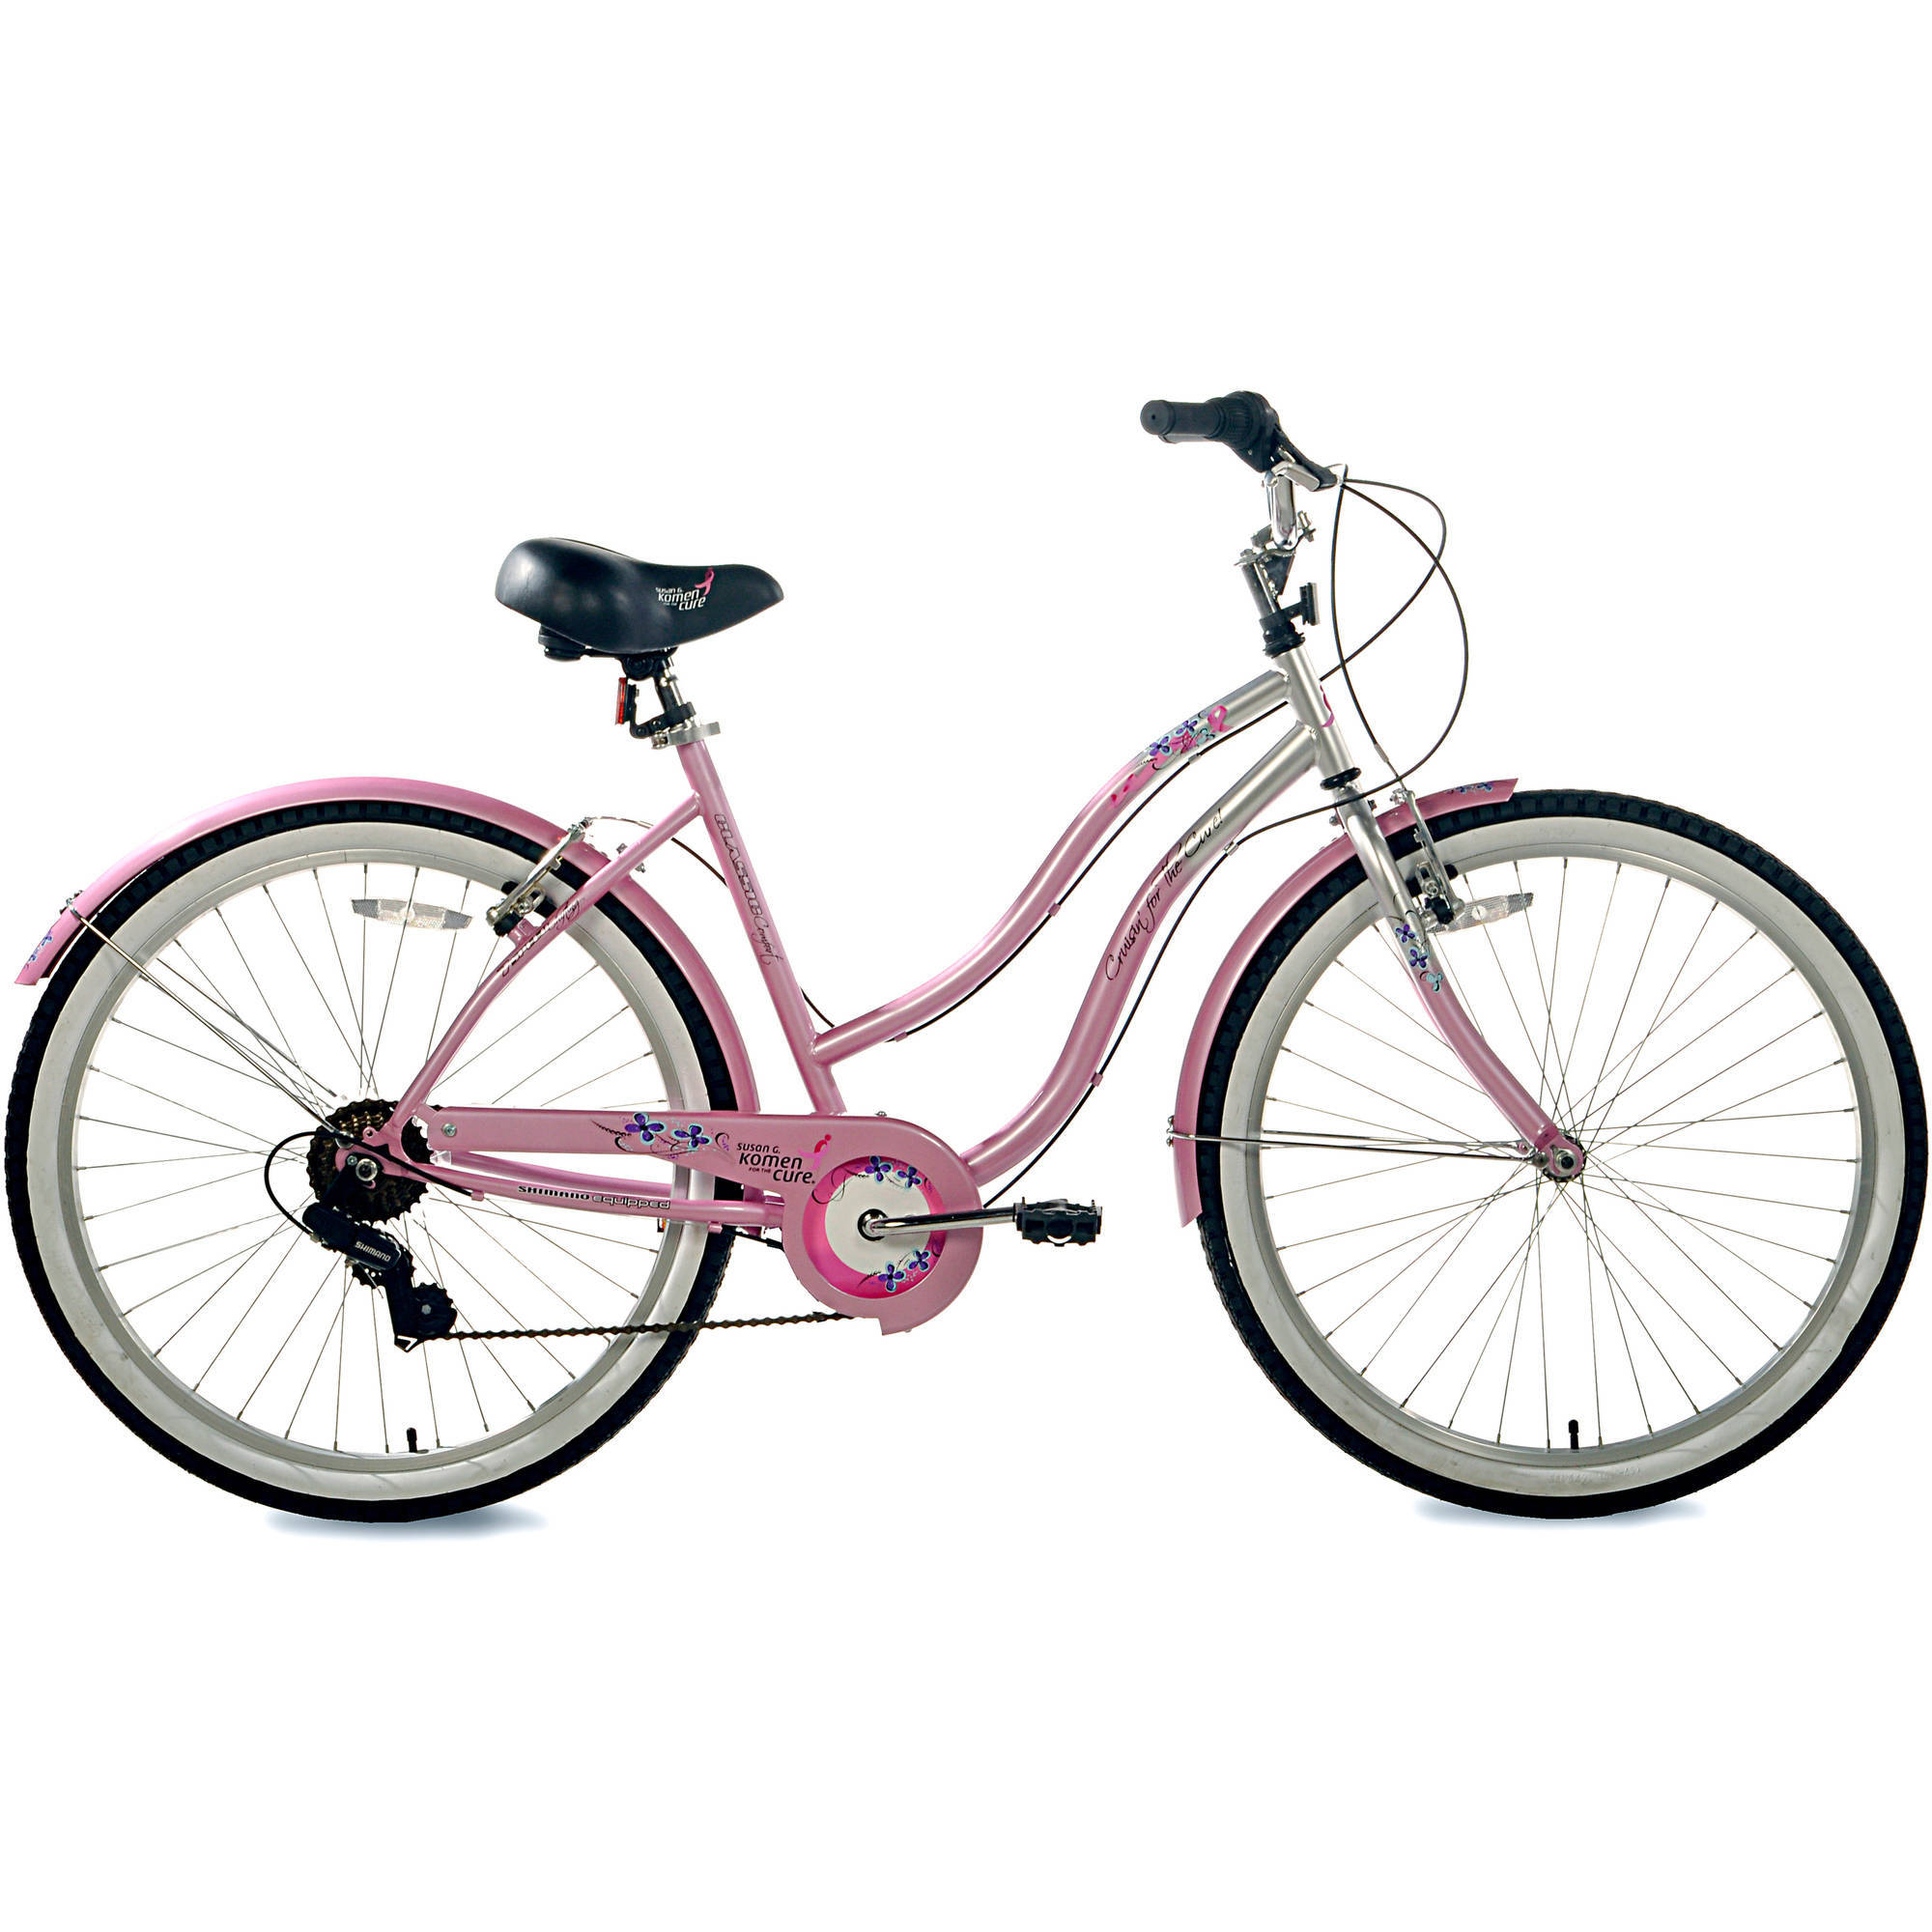 "26"" Susan G. Komen Multi-Speed Women's Cruiser Bike by Generic"